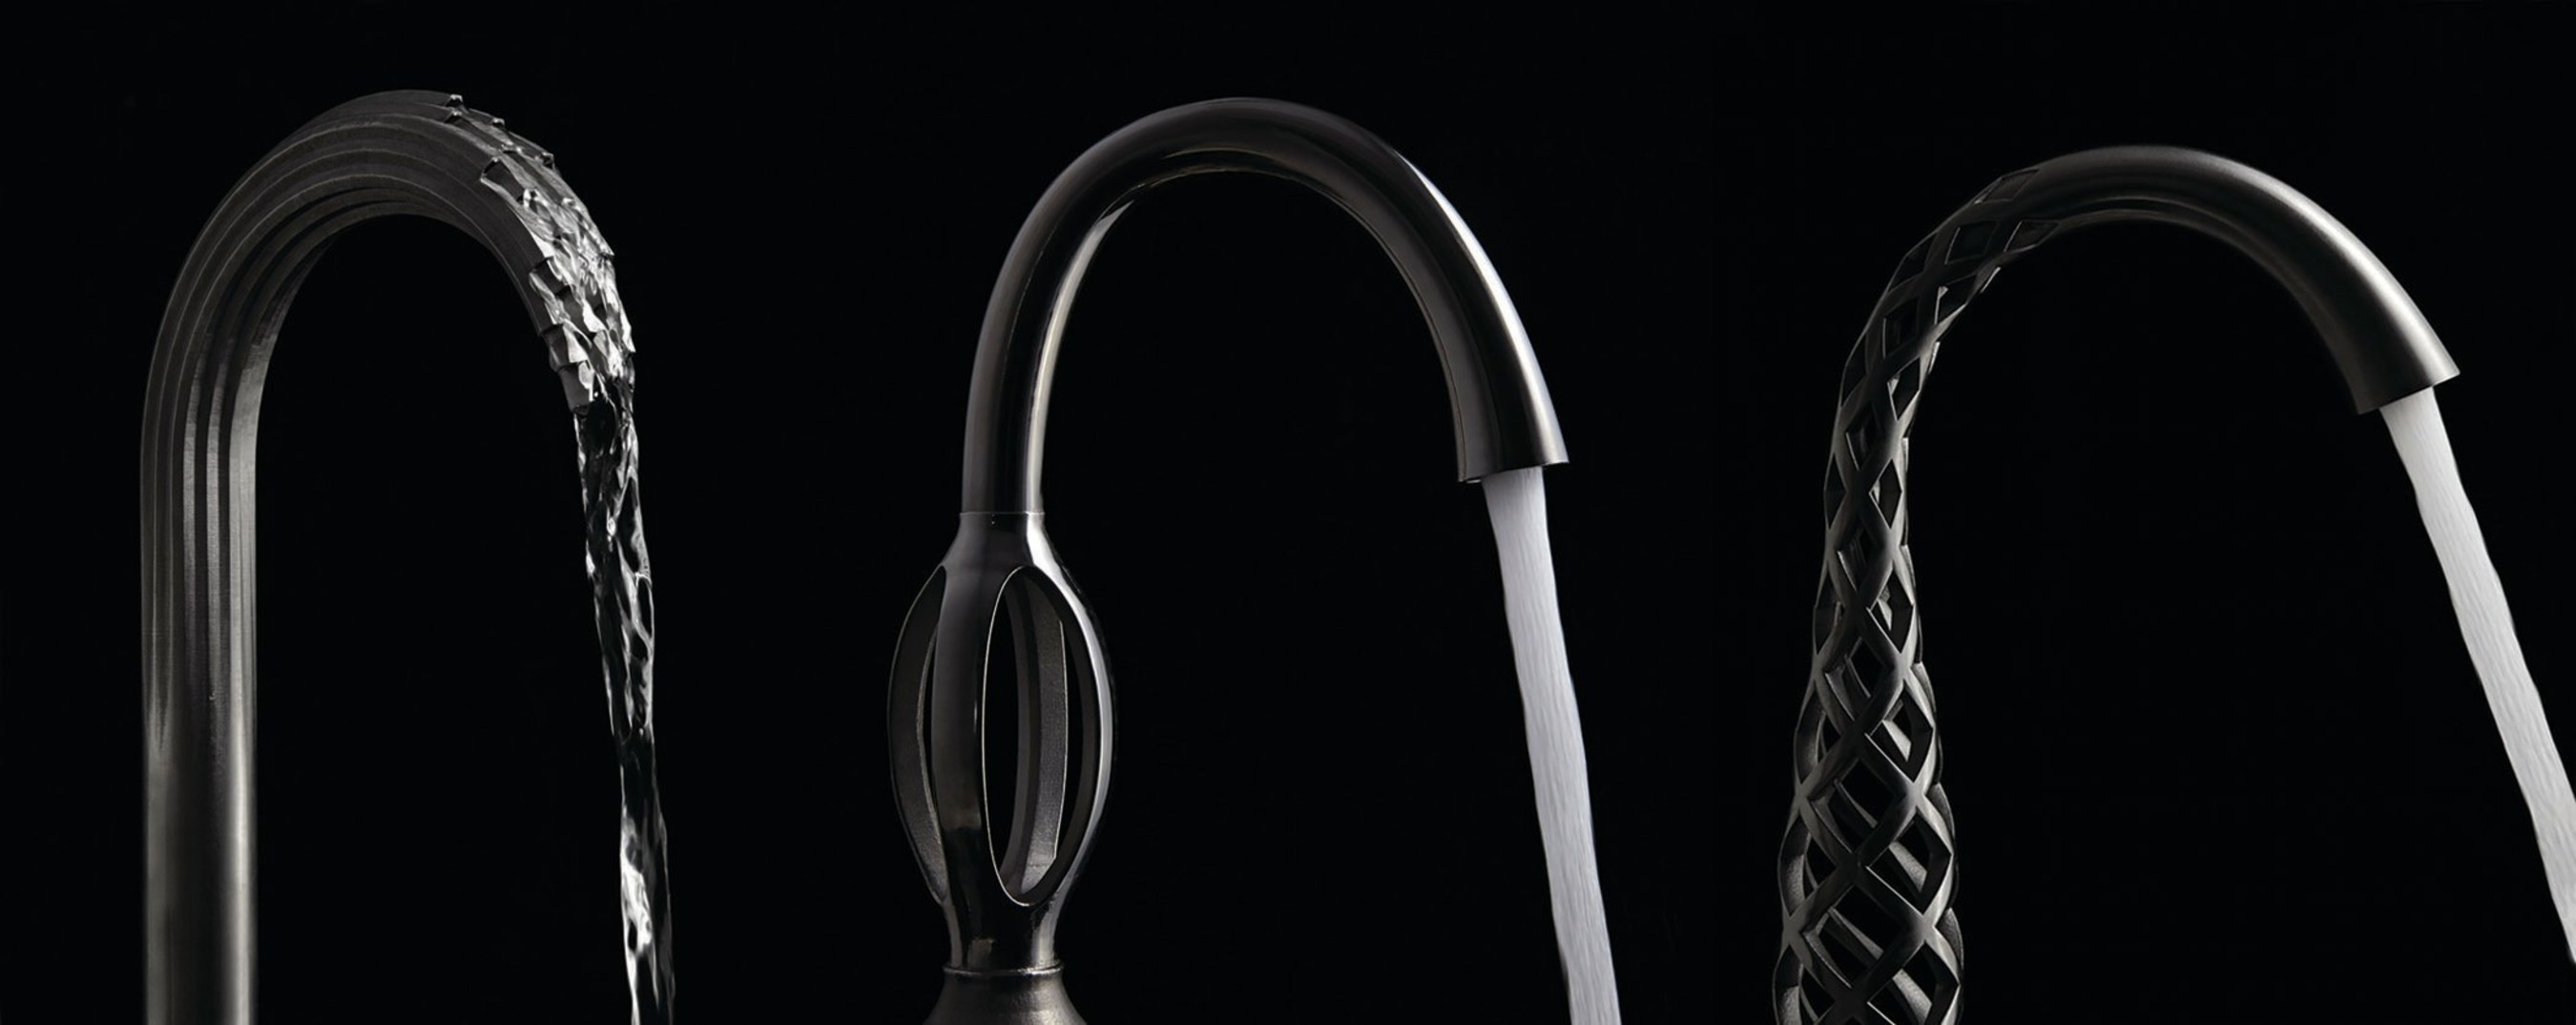 Luxury brand DXV introduced the first commercially-available residential faucets created with additive manufacturing, better known as 3D printing. These revolutionary - and WaterSense-certified - faucets helped to earn the Company a 2016 WaterSense Excellence in Innovation and Research Award.